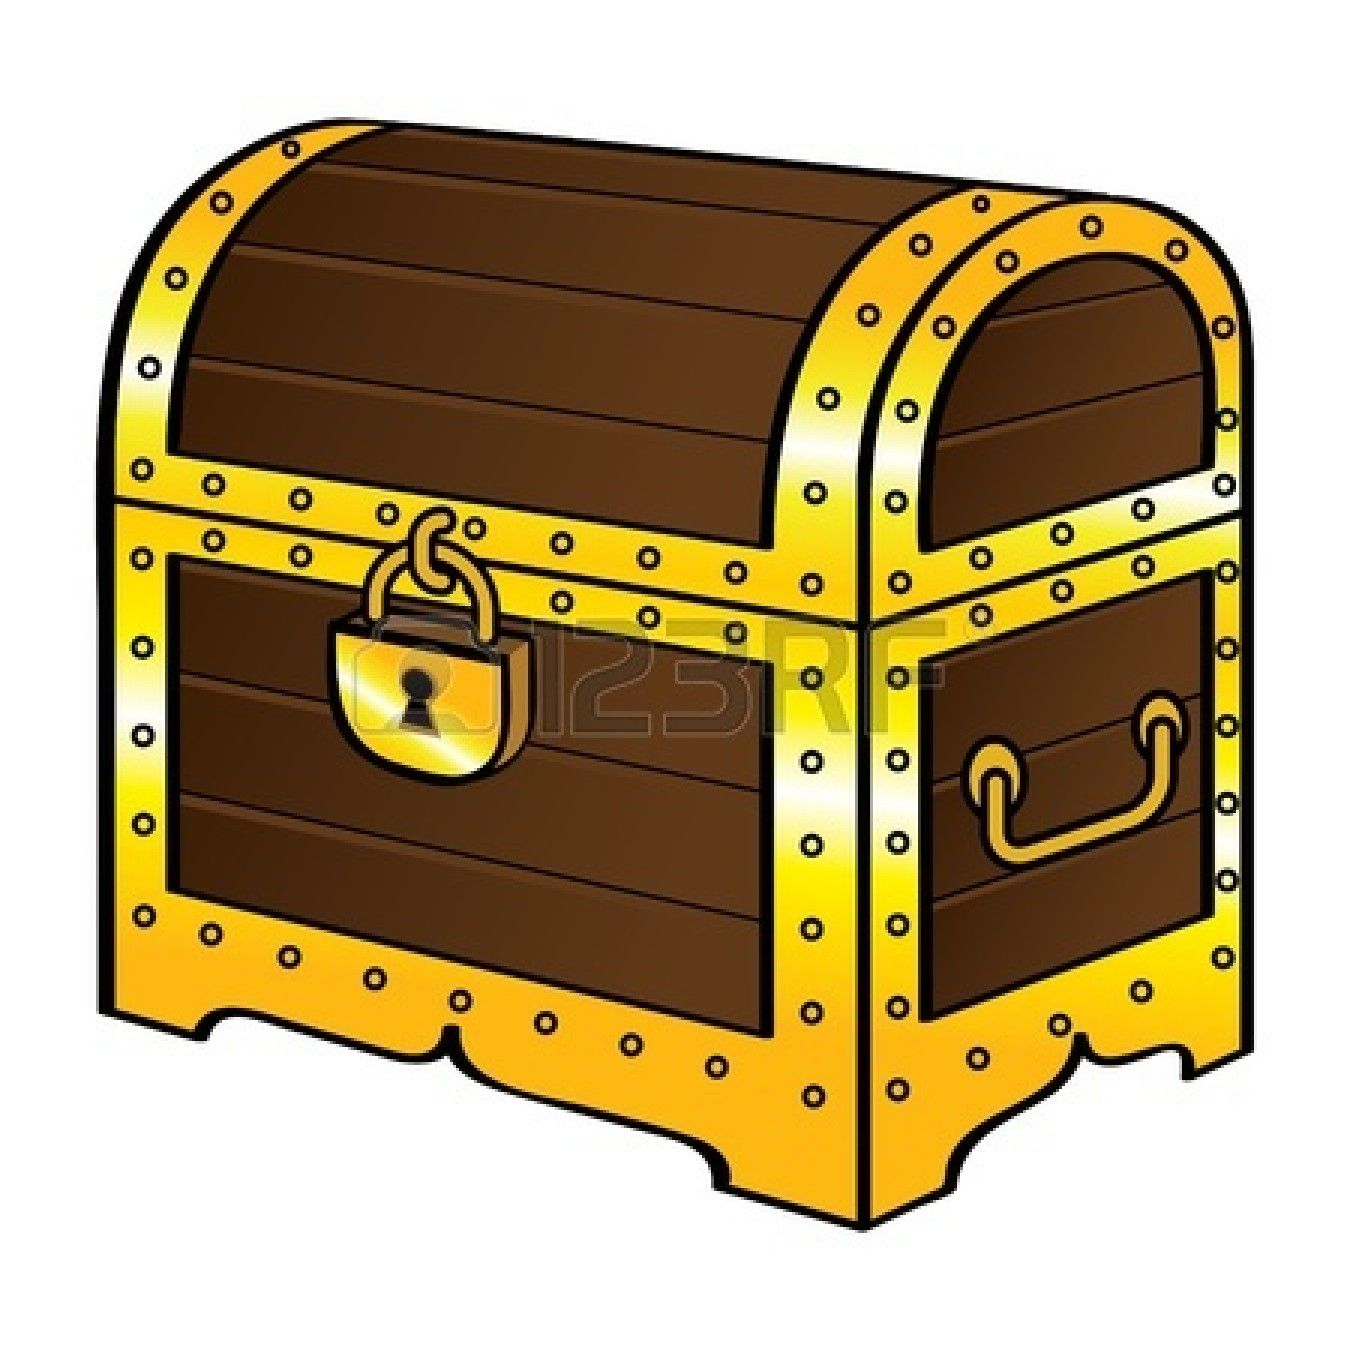 Treasure Chest Stock Vector Illustration And Royalty Free ... image black and white download